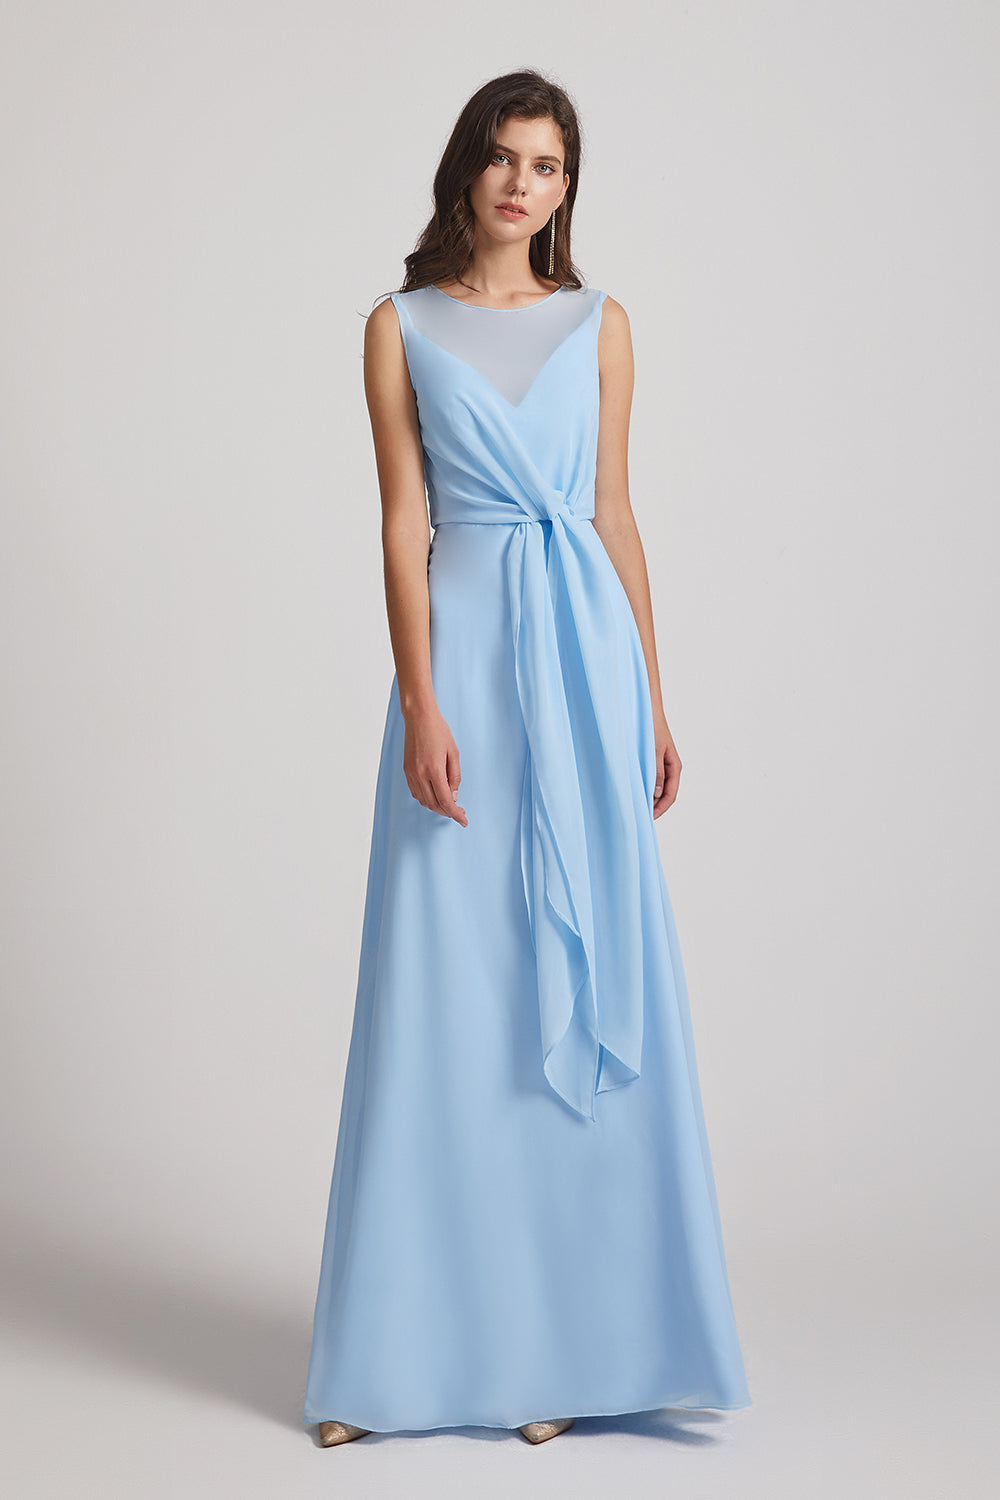 jewel chiffon bridesmaid gowns